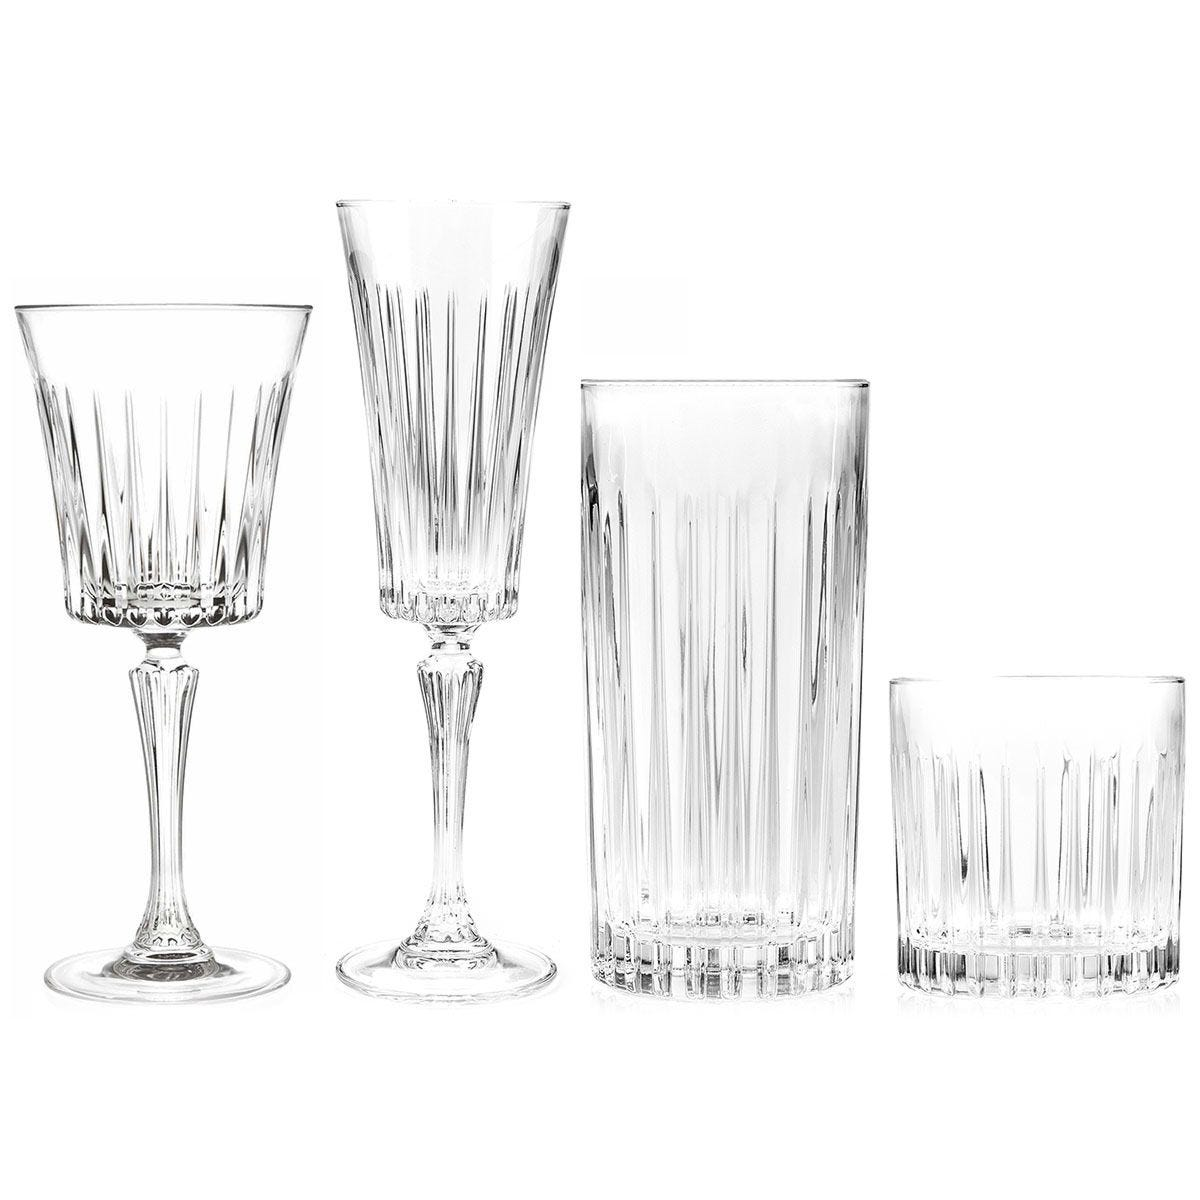 Rcr Timeless Luxion Crystal Drinkware Collection 24 Piece Robert Dyas